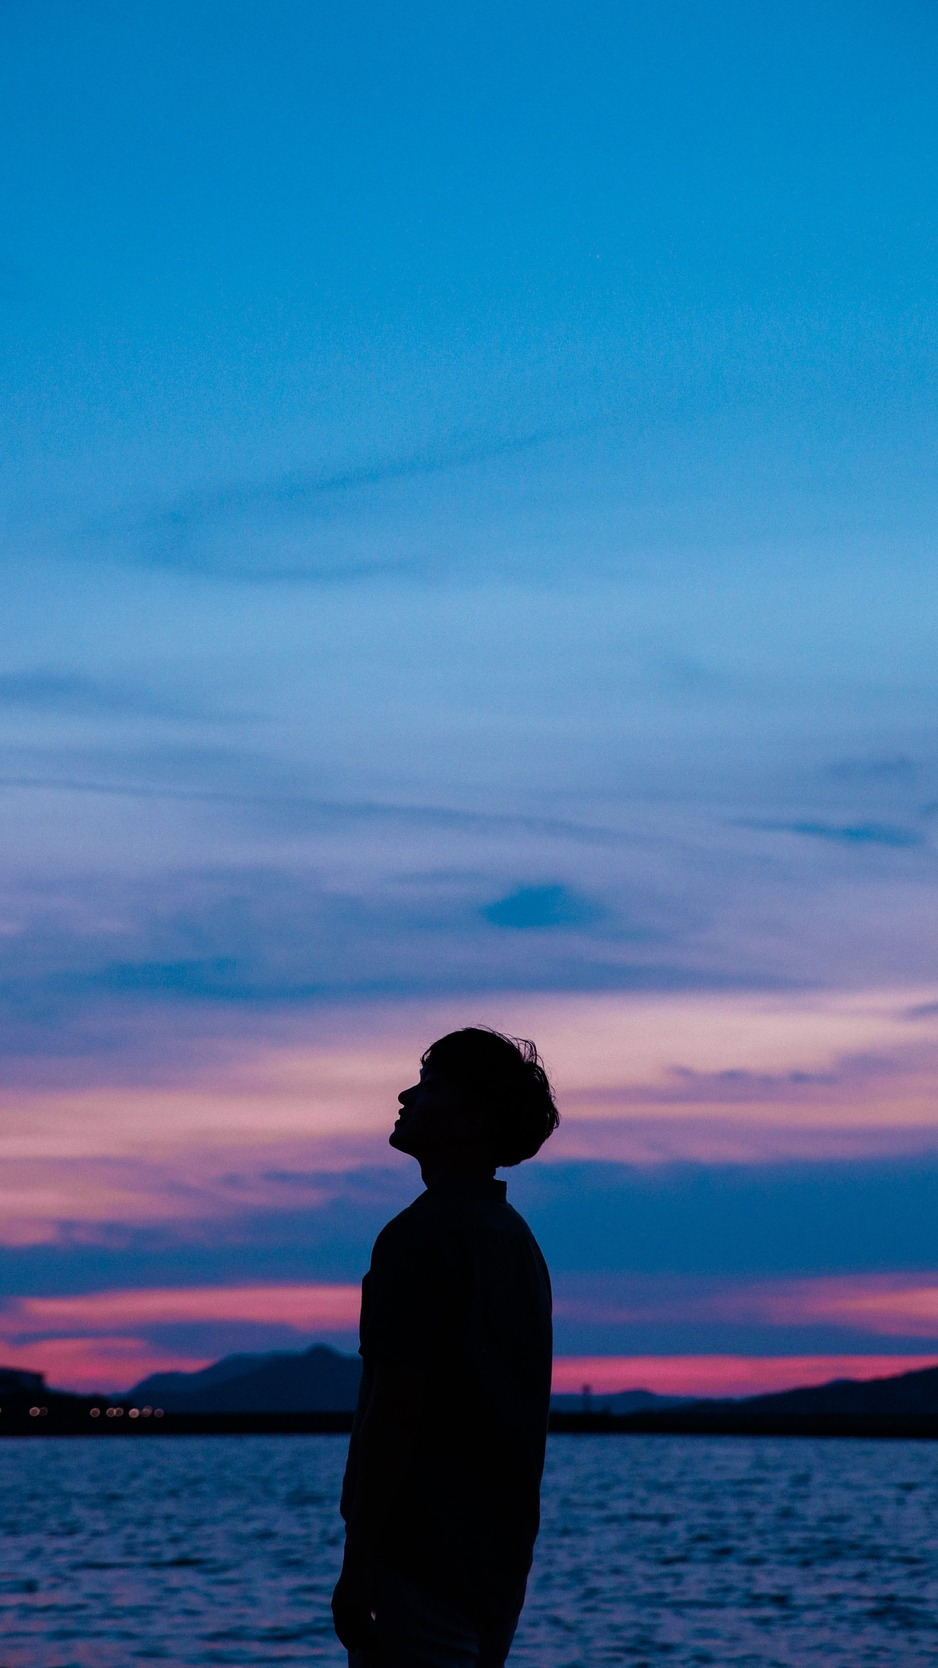 Download wallpaper 938x1668 boy silhouette sunset sky sea 938x1668